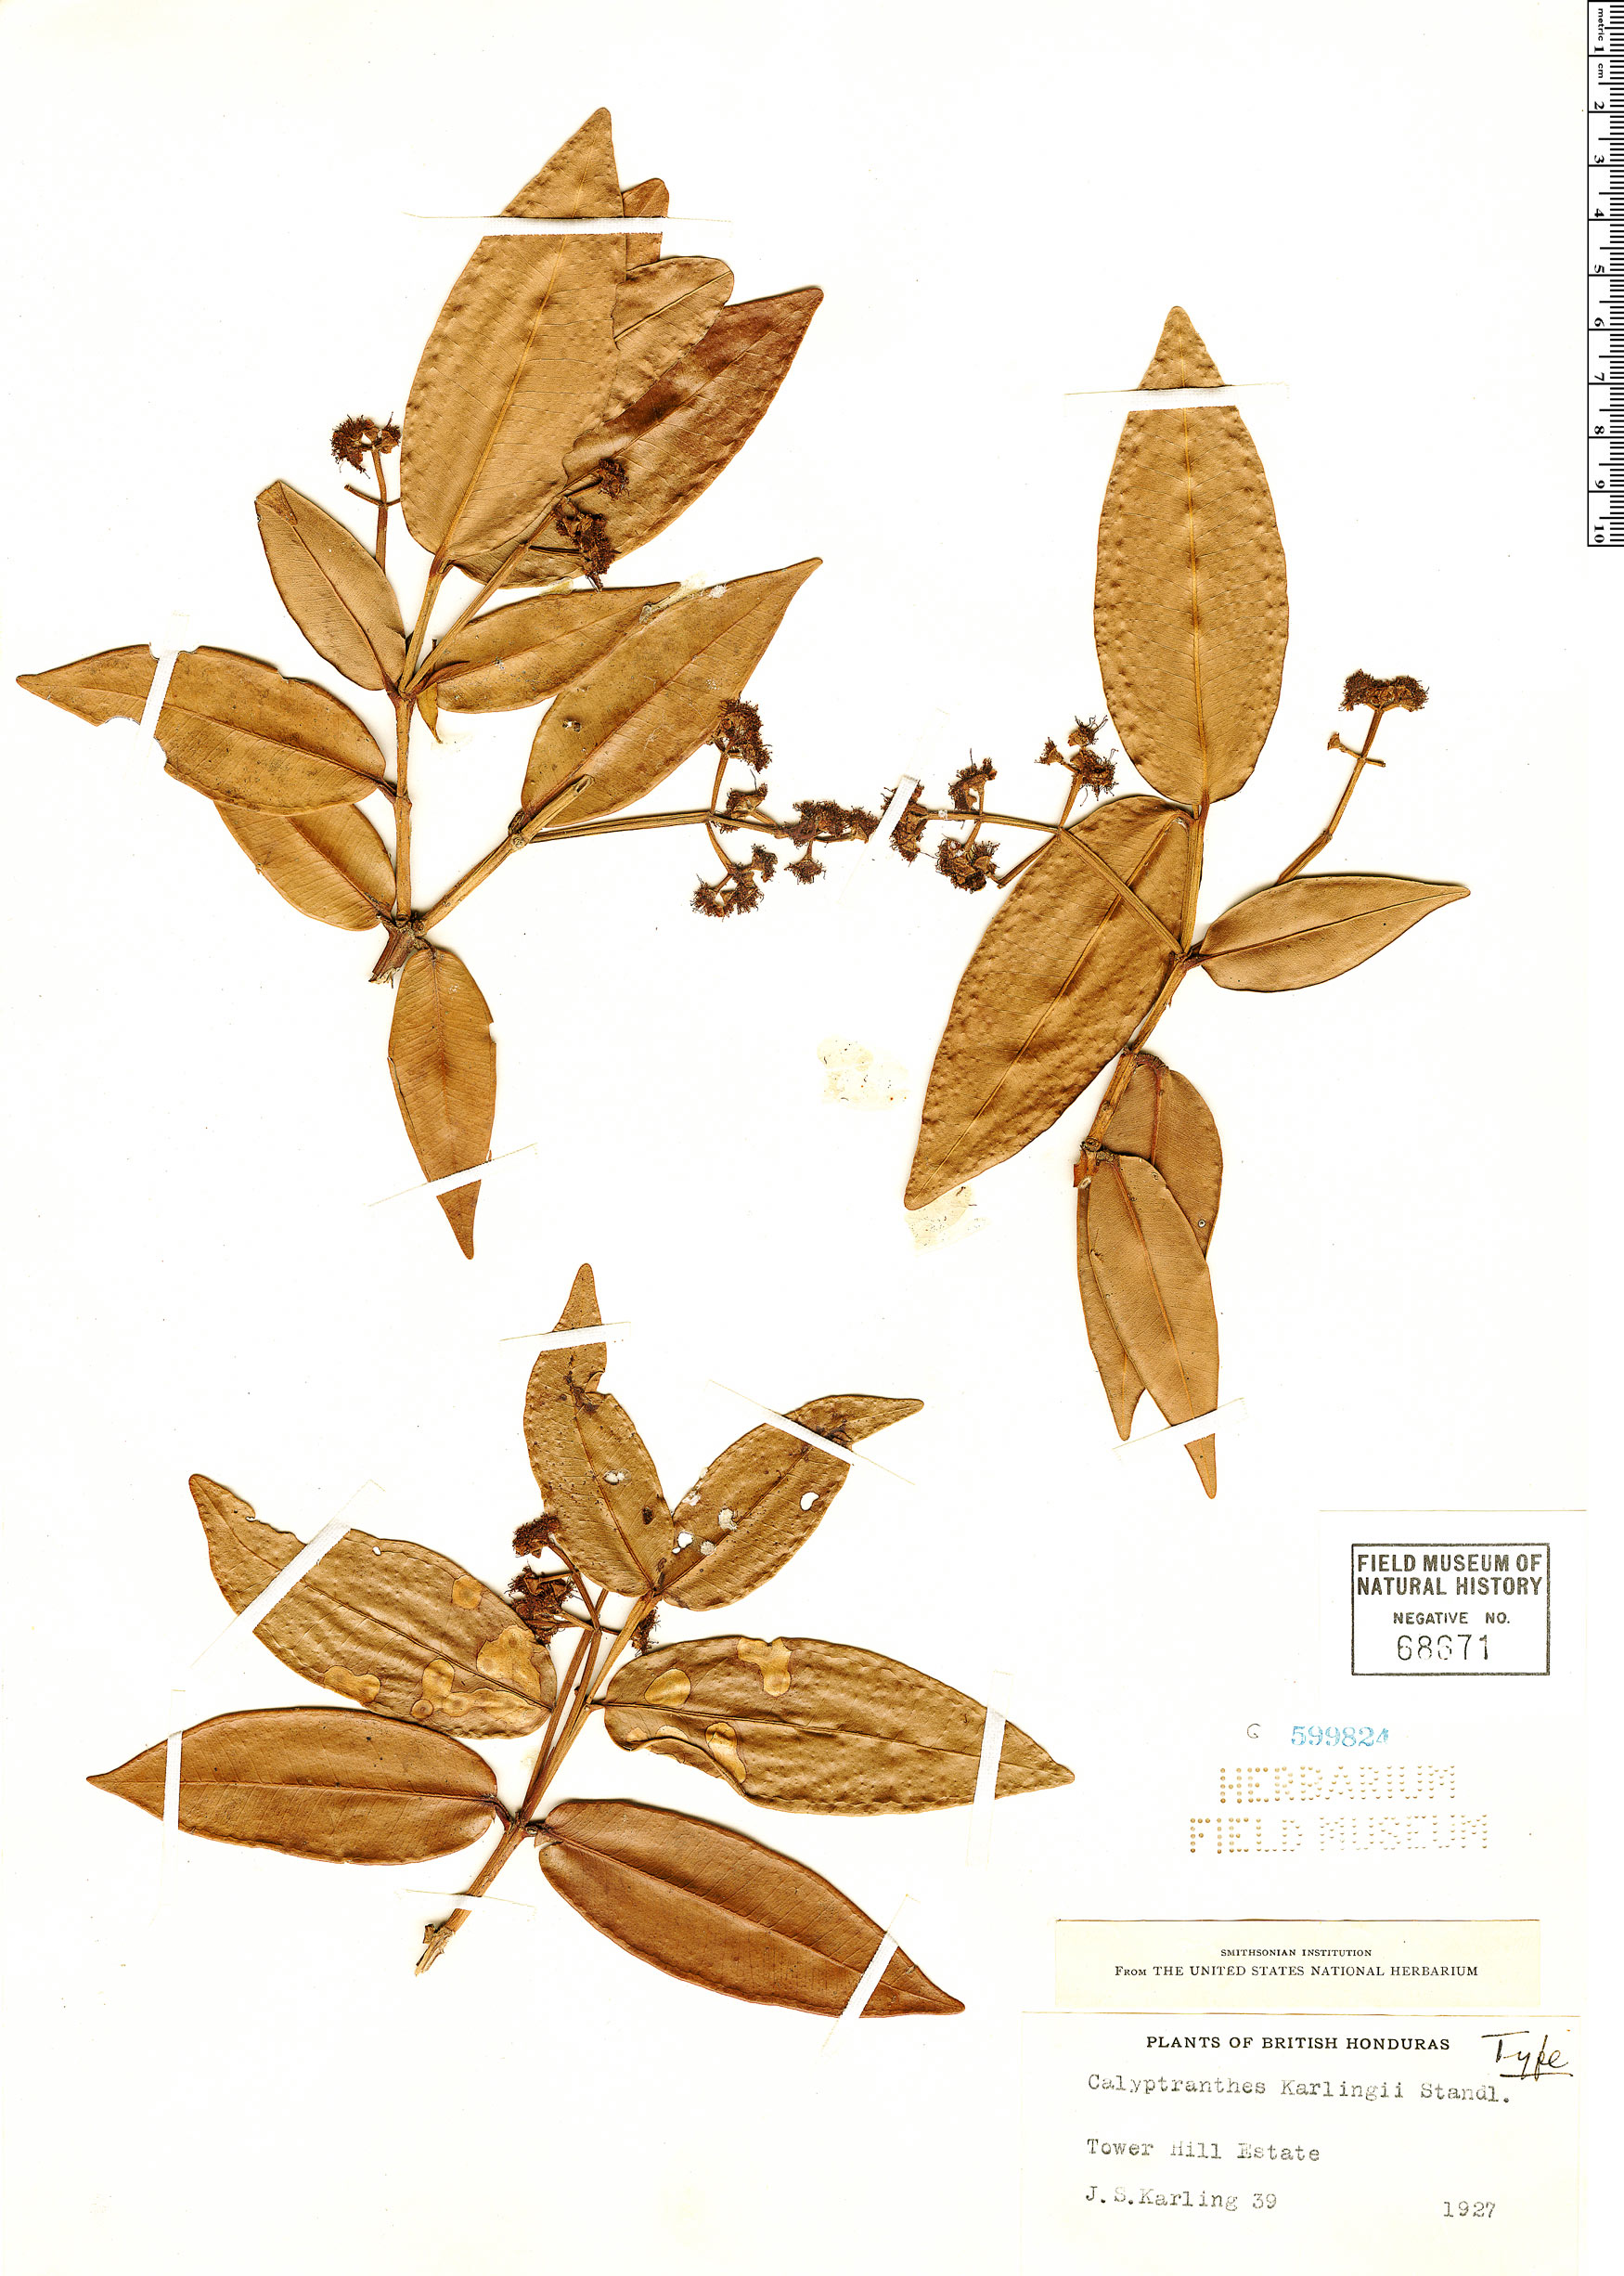 Specimen: Calyptranthes karlingii